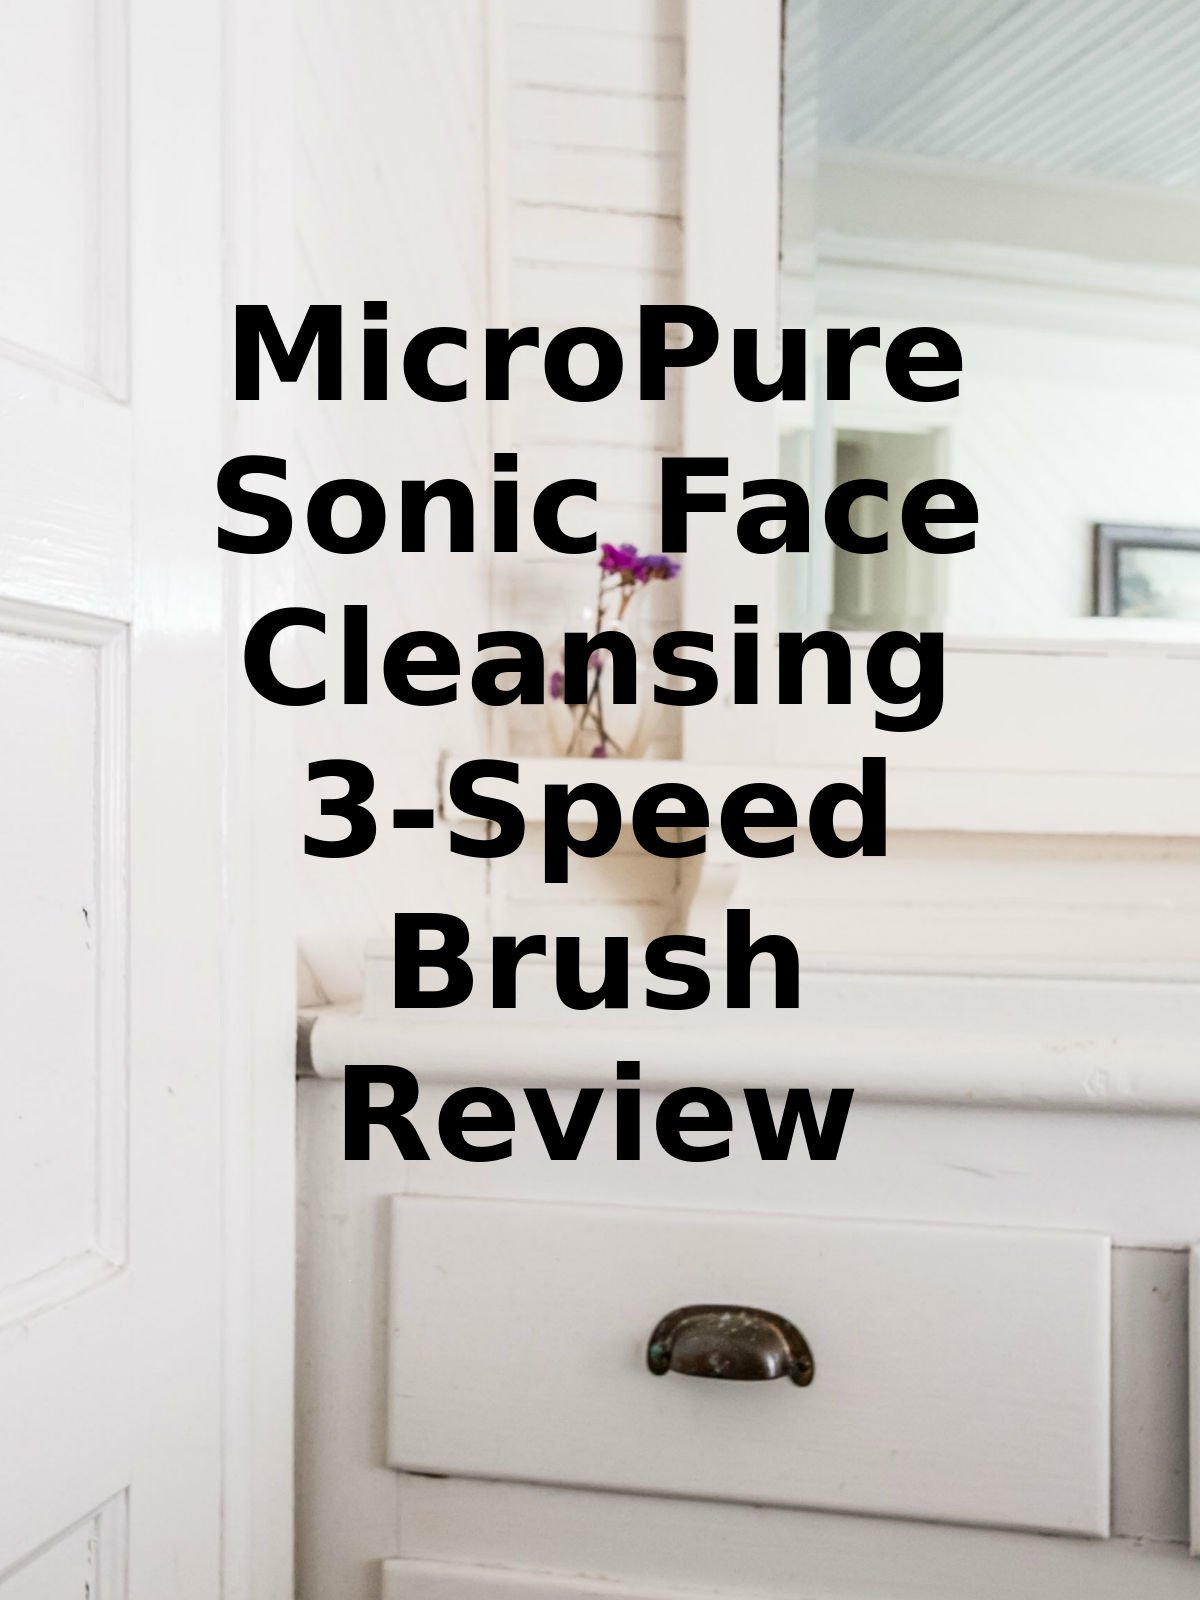 Review: MicroPure Sonic Face Cleansing 3-Speed Brush Review